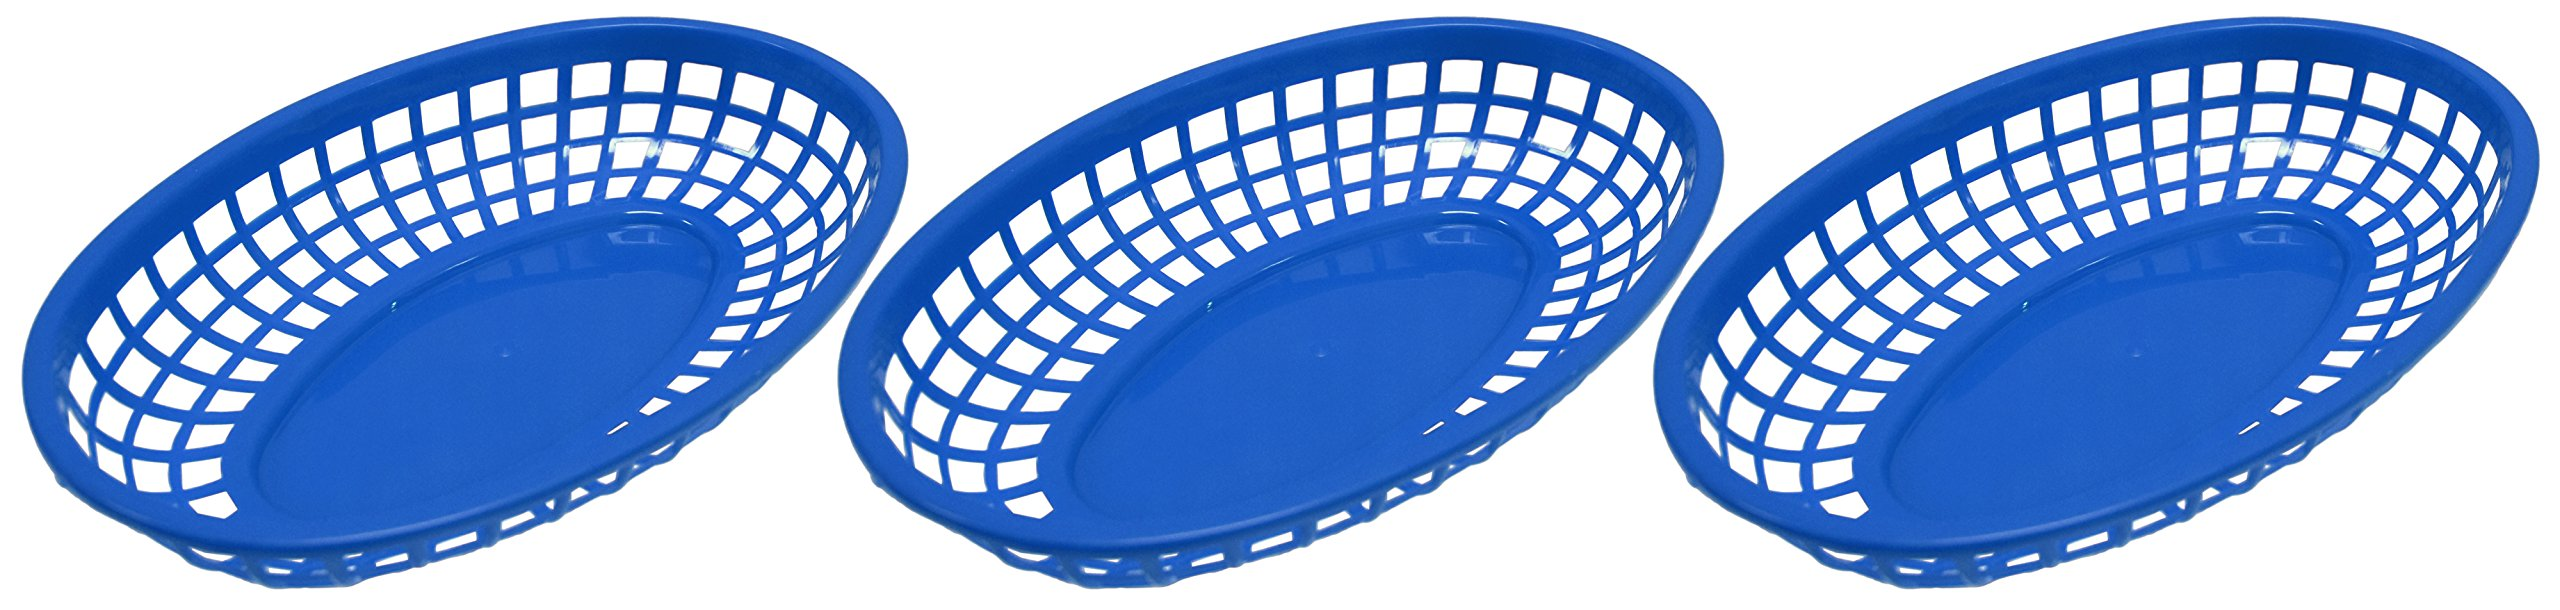 Set of 12 Blue Oval Fast Food / Deli Baskets, 9.25 by 5.67-Inch, Blue (12) by Regent (Image #2)